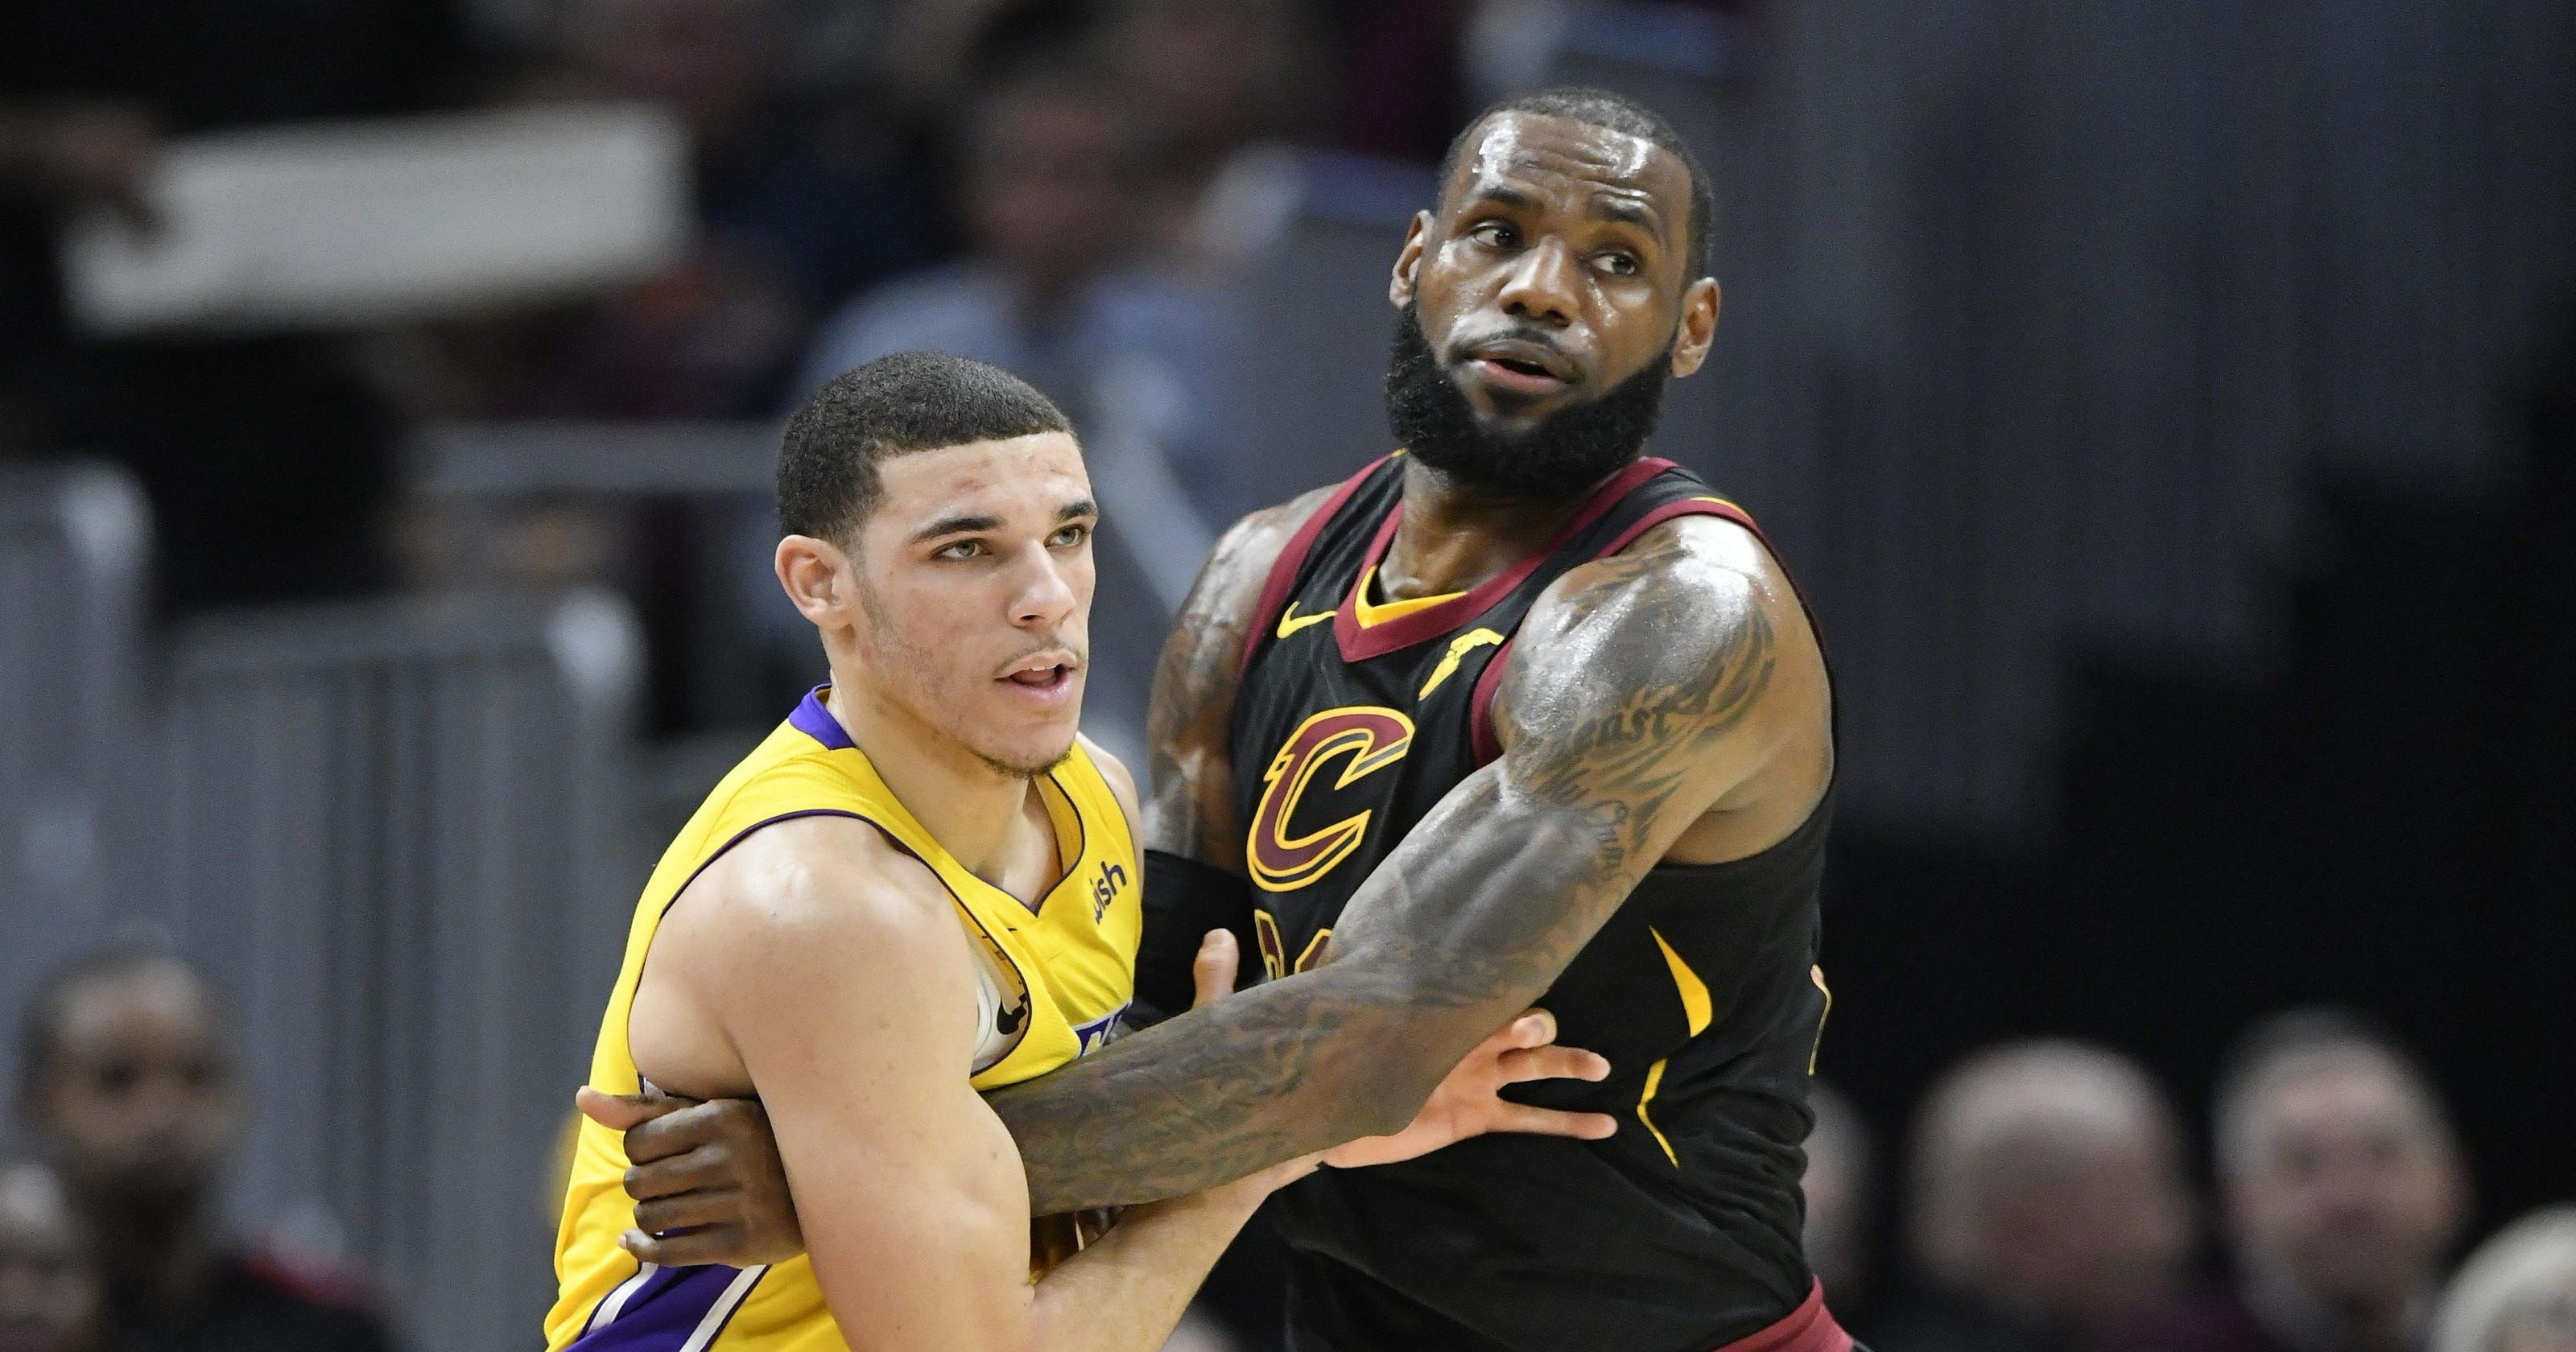 LaVar Ball's latest bluster shows Los Angeles Lakers need to trade Lonzo Ball